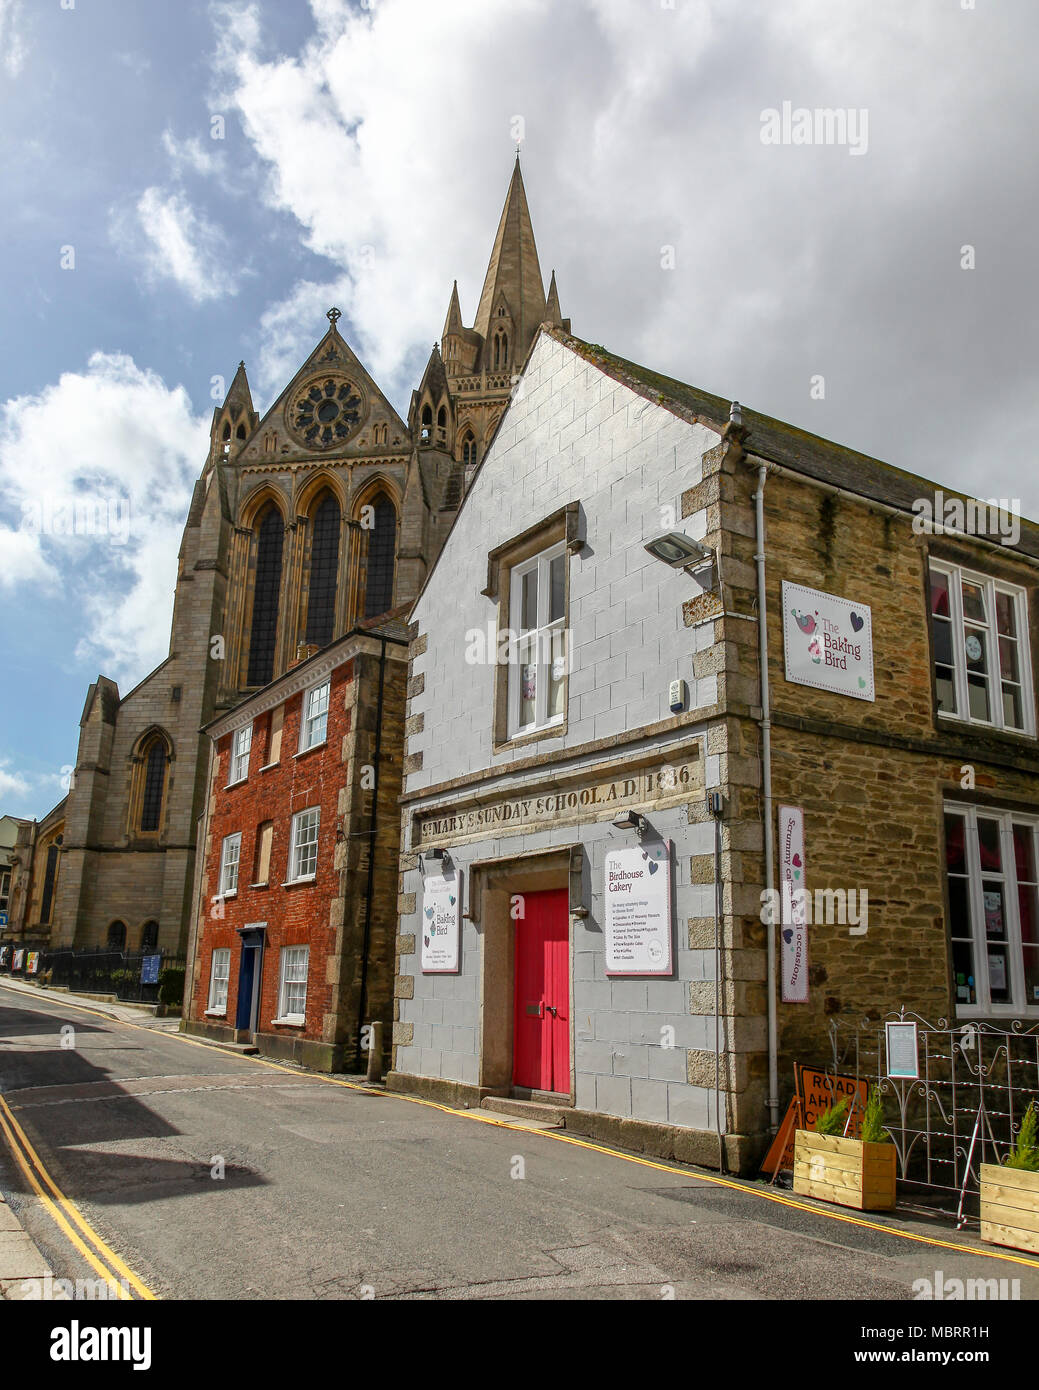 St. Mary's Sunday School building on Old Bridge Street, built in 1836 at Truro, Cornwall, South West England, UK - Stock Image